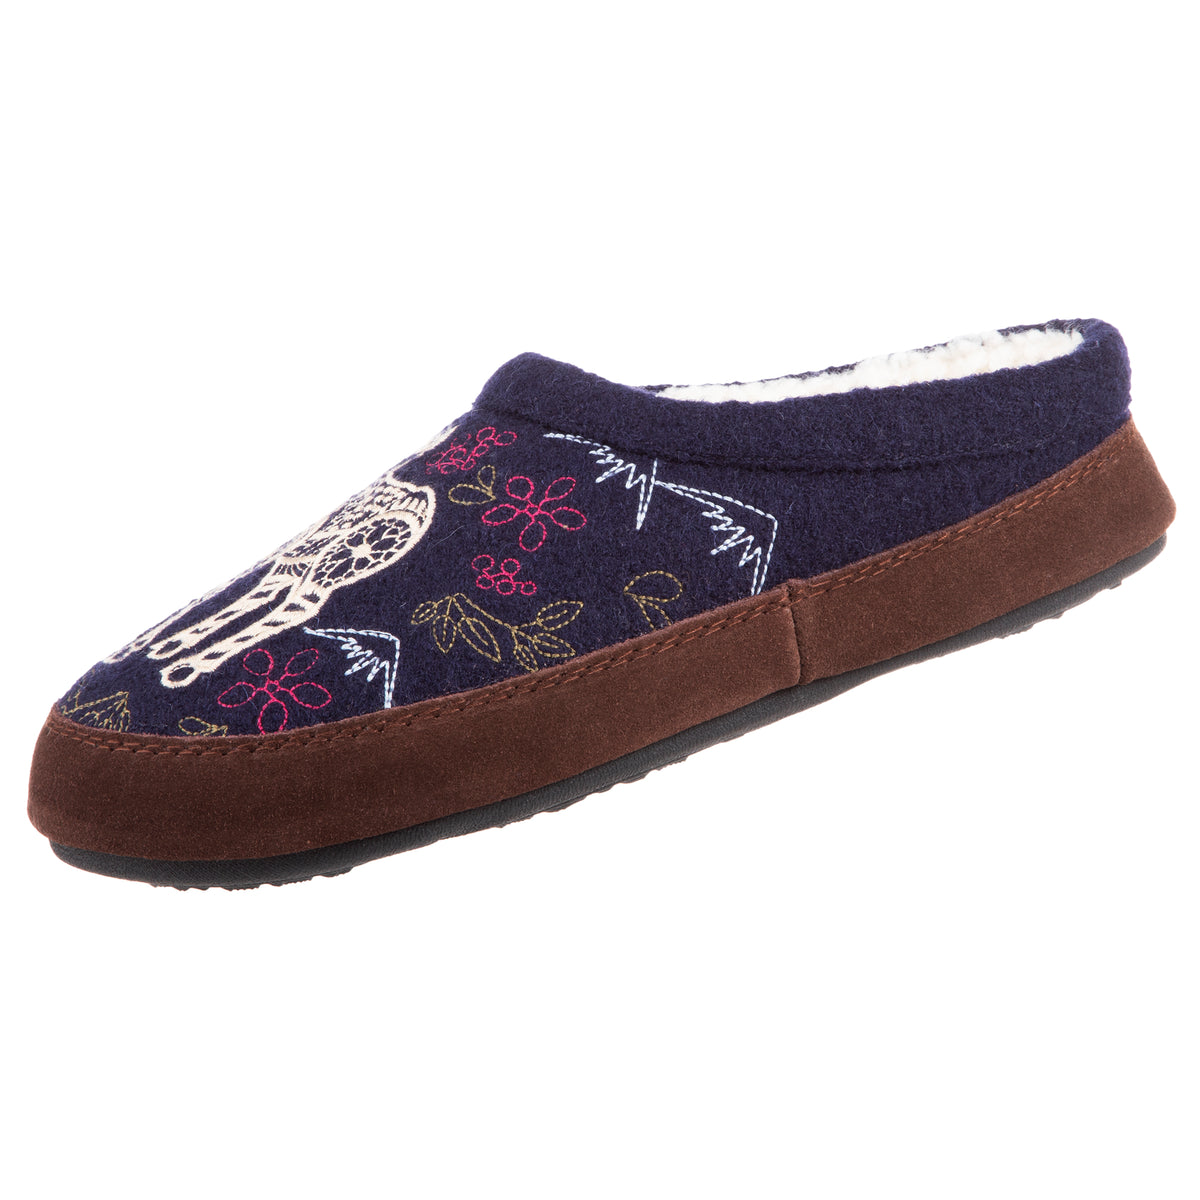 Women's Forest Mule Slippers in Navy Moose Right Angled View